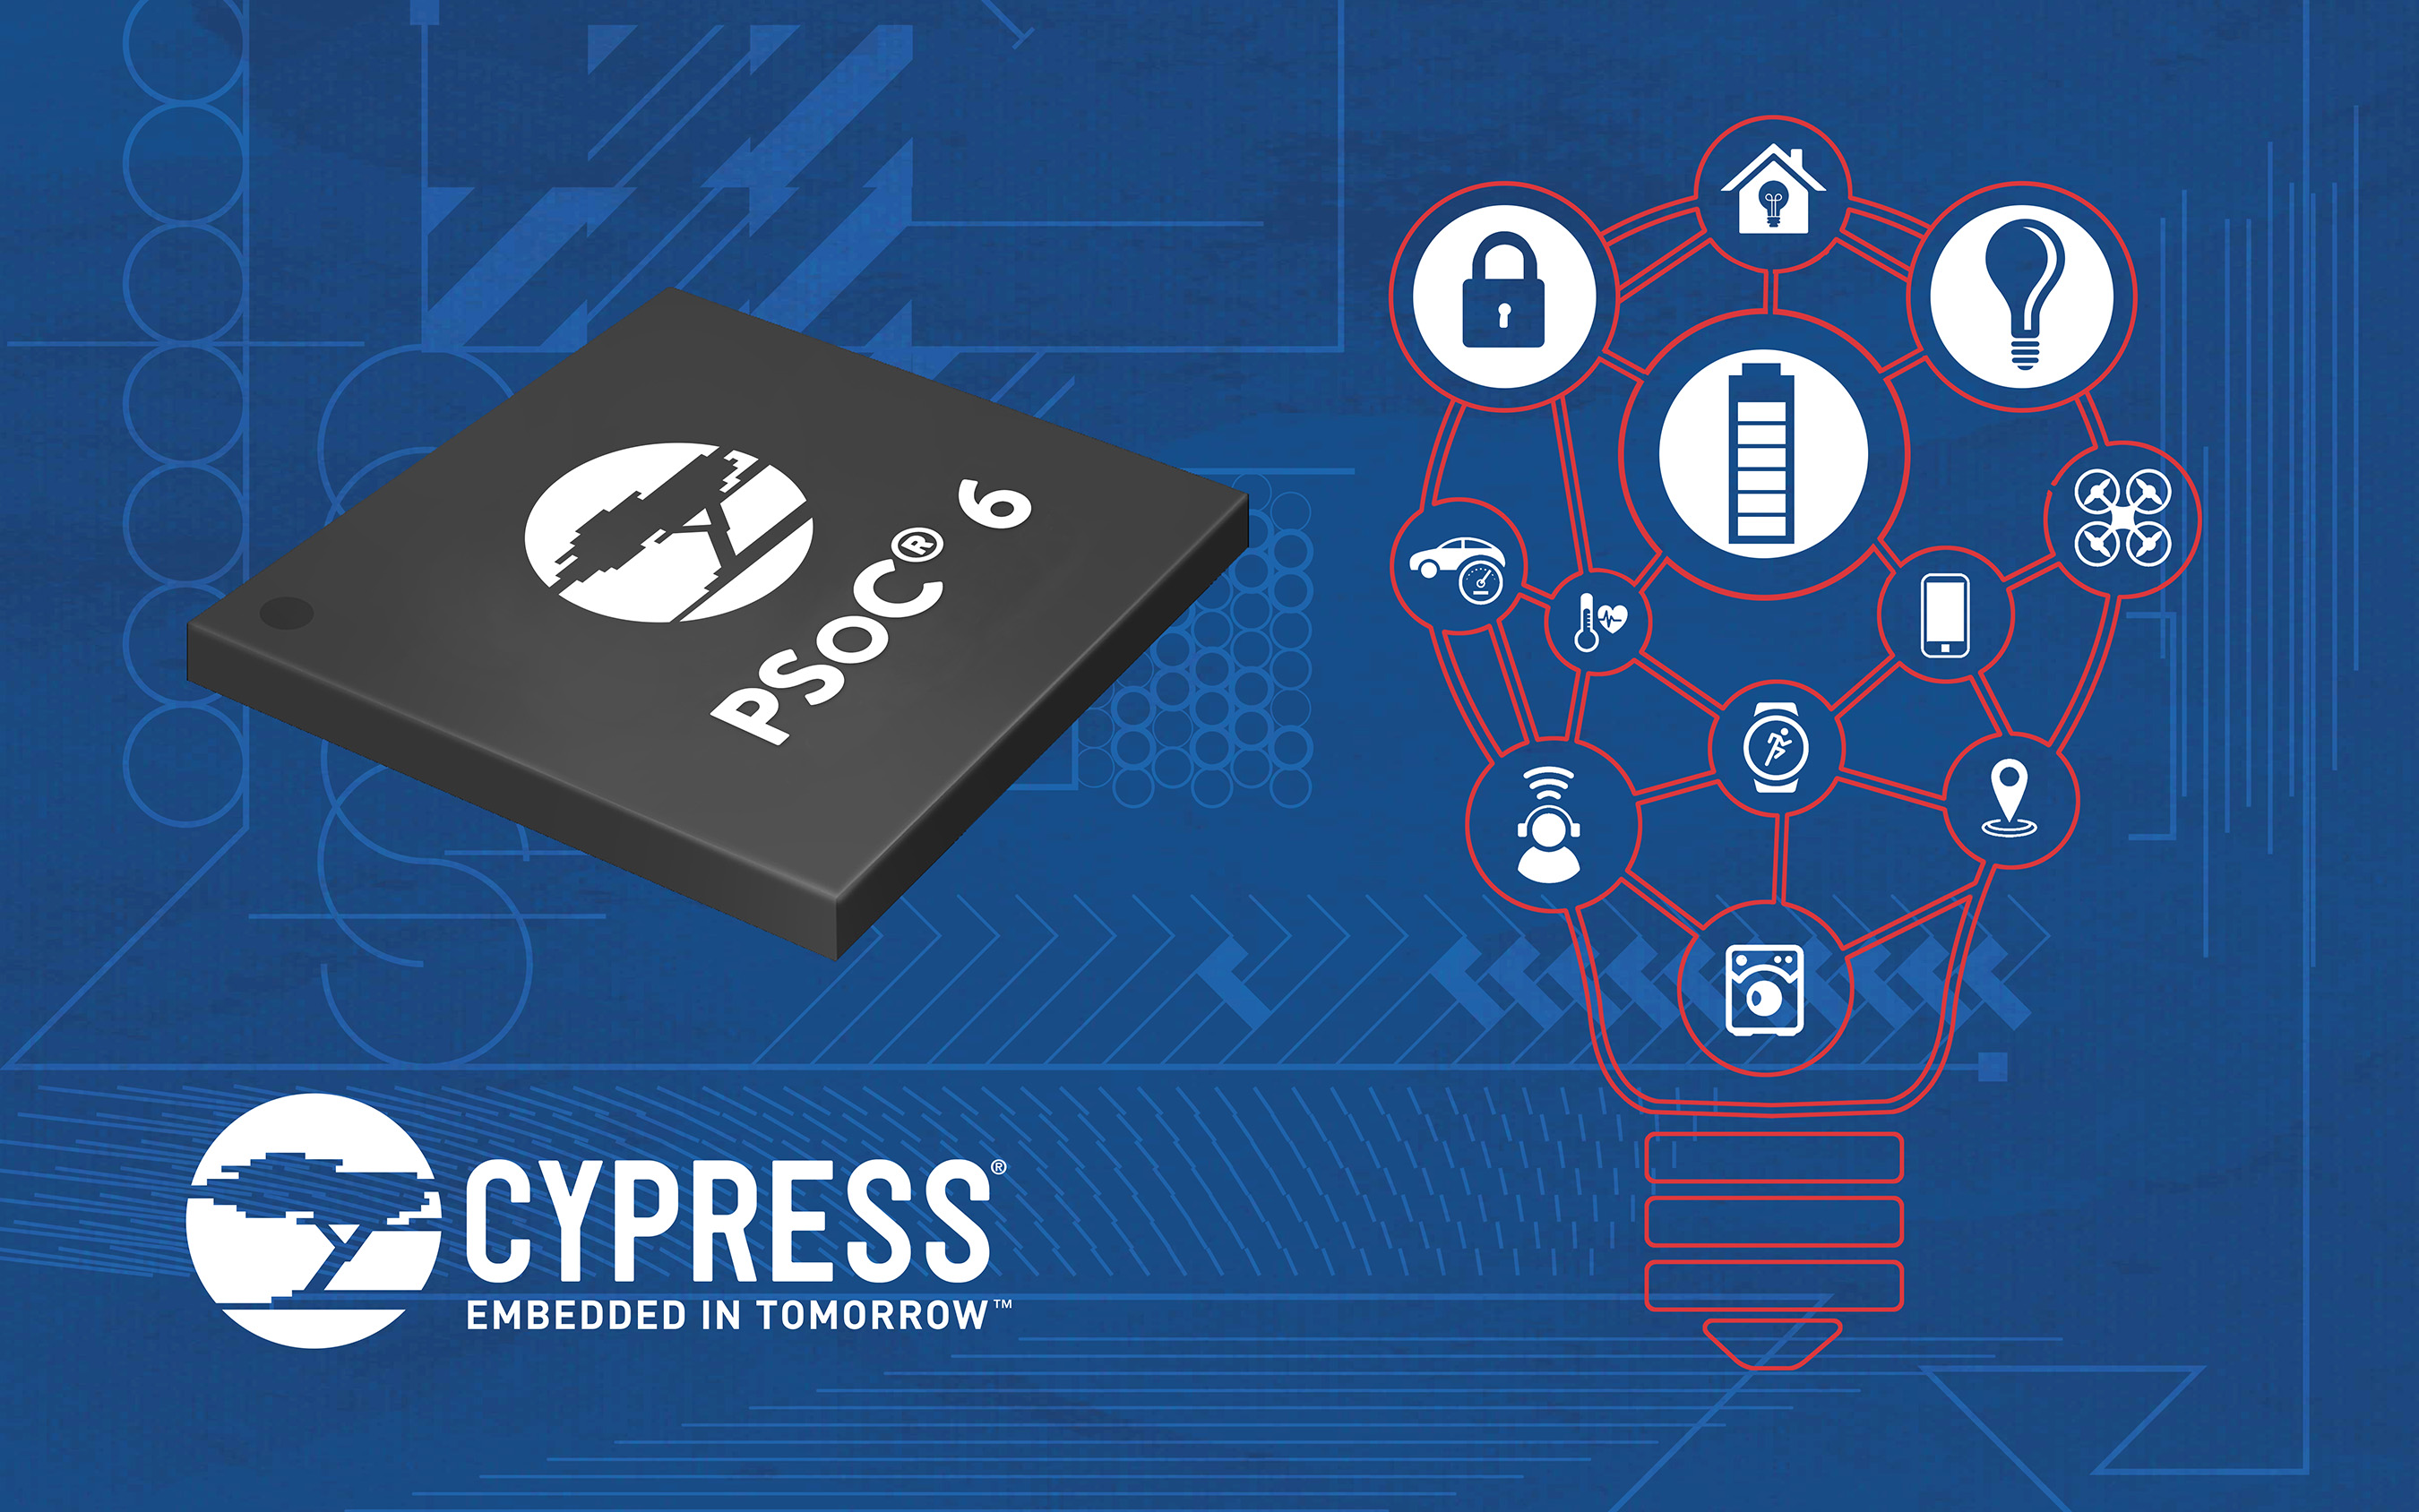 Pictured is Cypress� newest MCU architecture, purposely built for the Internet of Things.